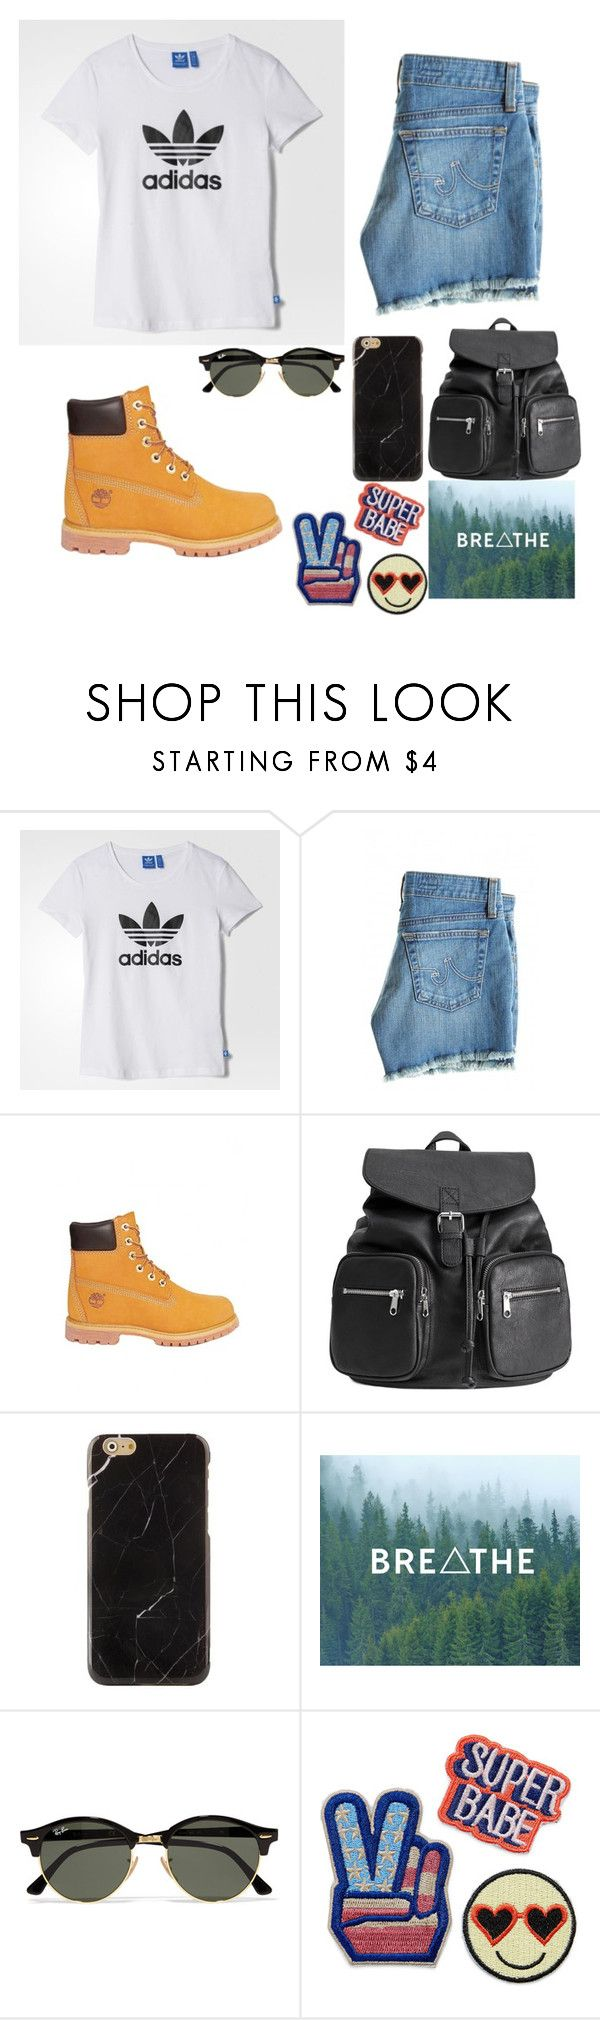 Untitled #4 by raven-blackk on Polyvore featuring adidas, AG Adriano Goldschmied, Timberland, H&M and Ray-Ban